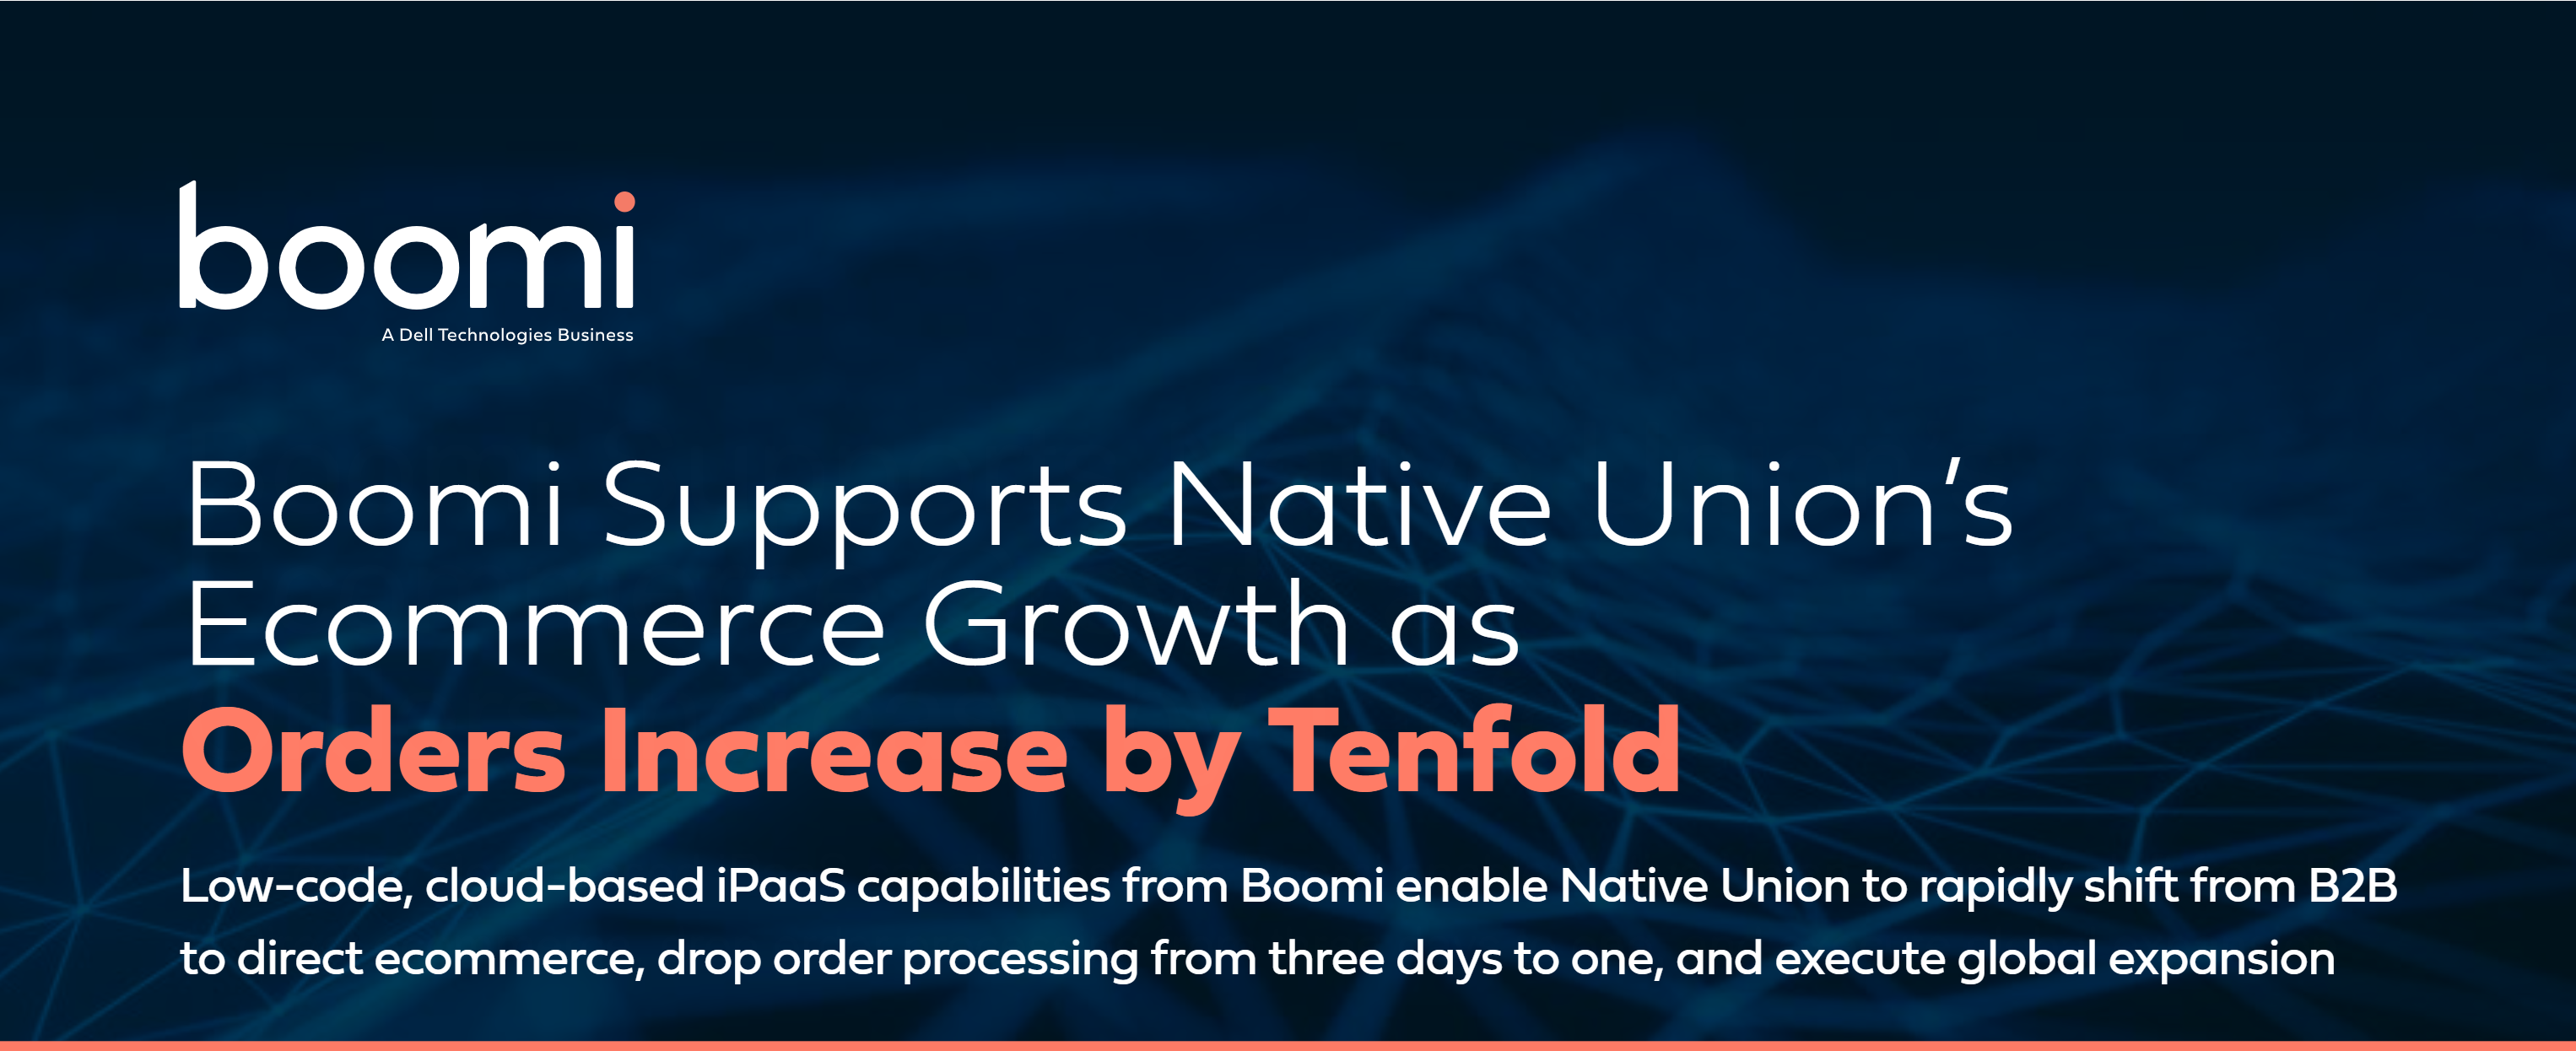 Boomi Supports Native Union's Ecommerce Growth